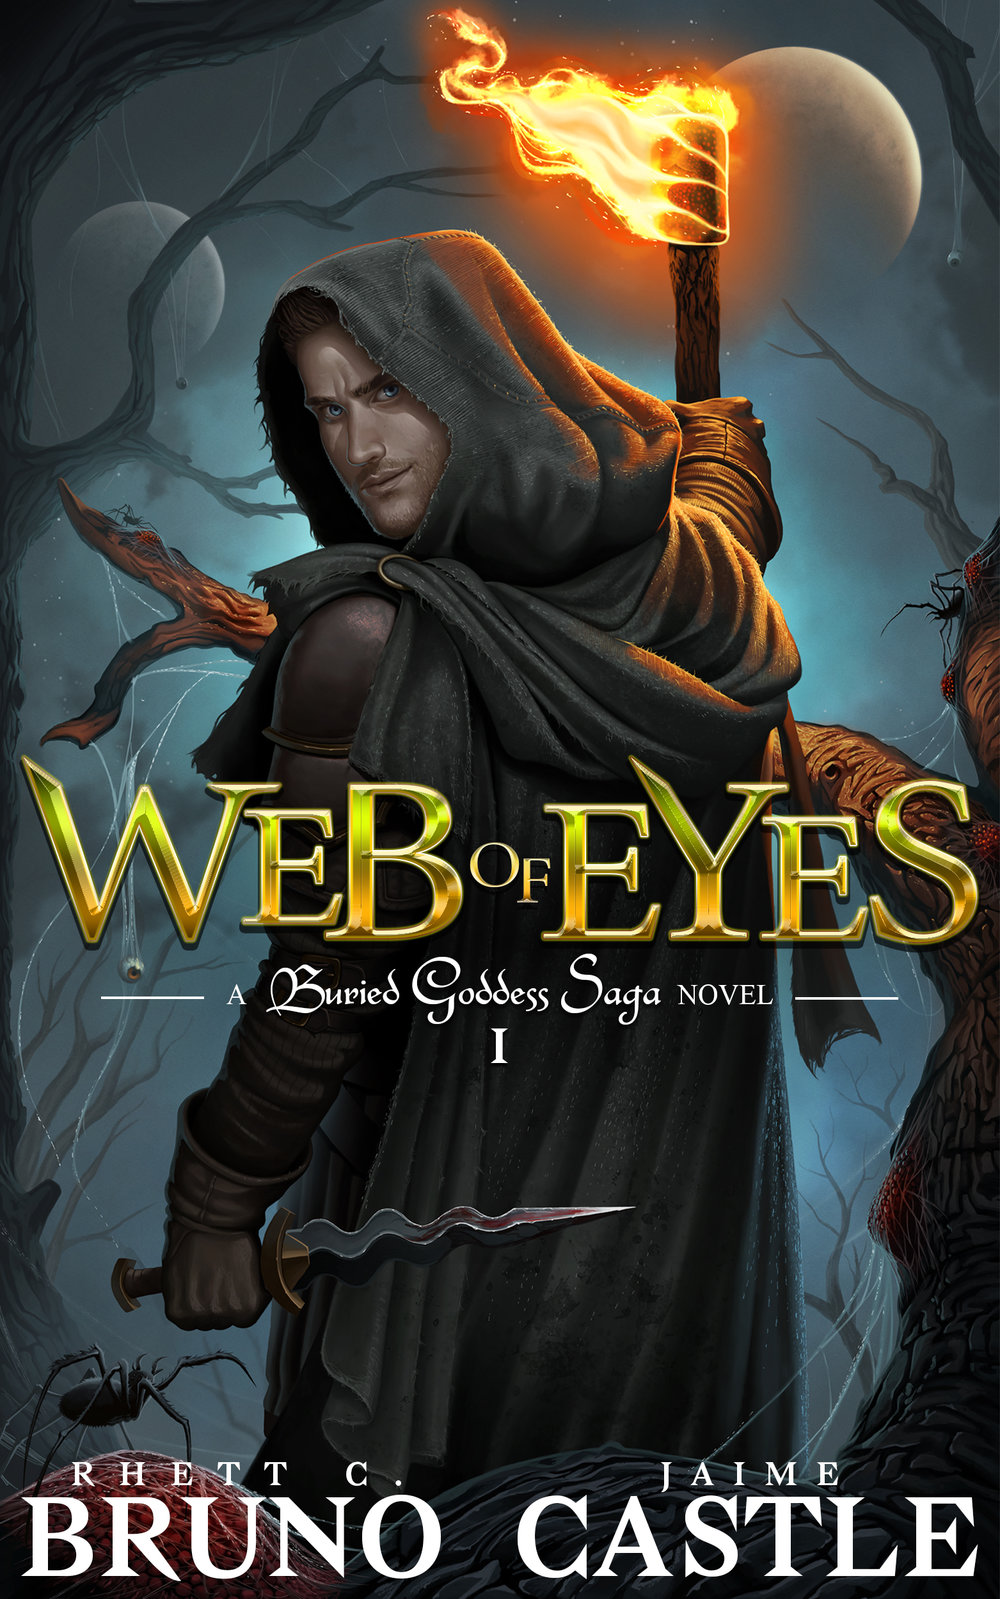 Web of Eyes   Buried Goddess Saga Book 1  Rhett C. Bruno & Jaime Castle